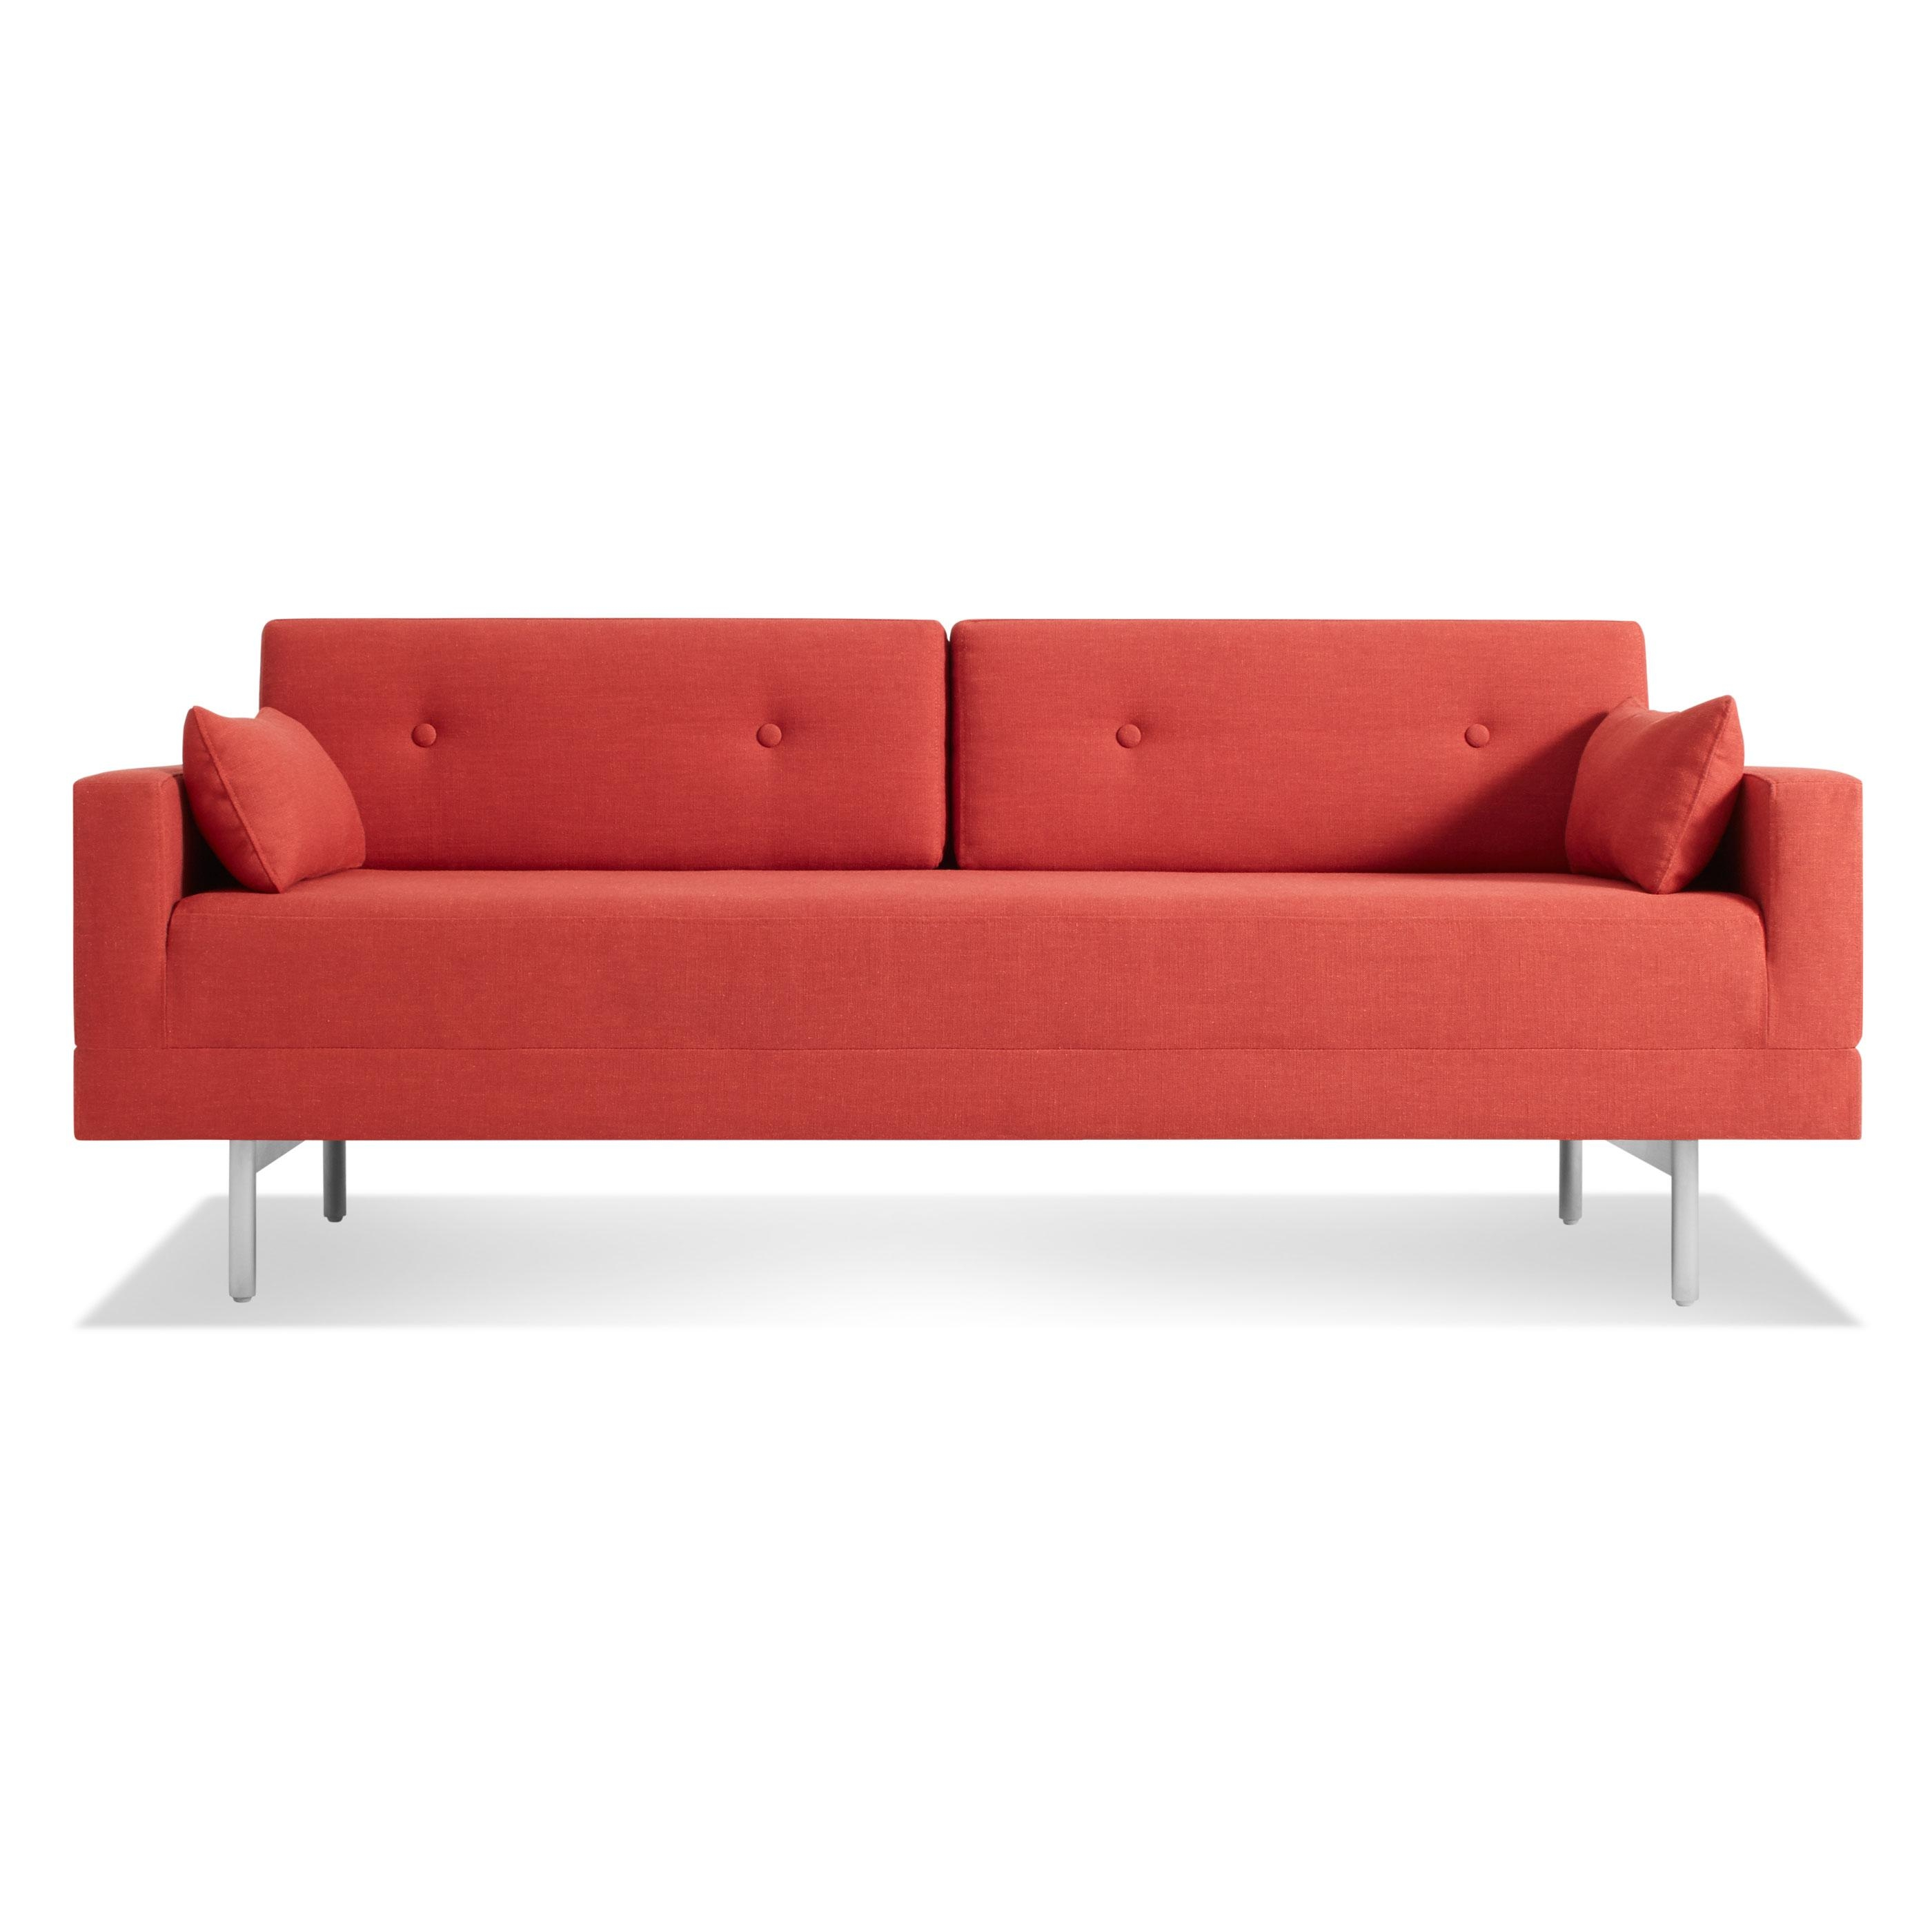 One Night Stand Modern Queen Sleeper Sofa | Blu Dot With Blu Dot Sleeper Sofas (Image 10 of 20)